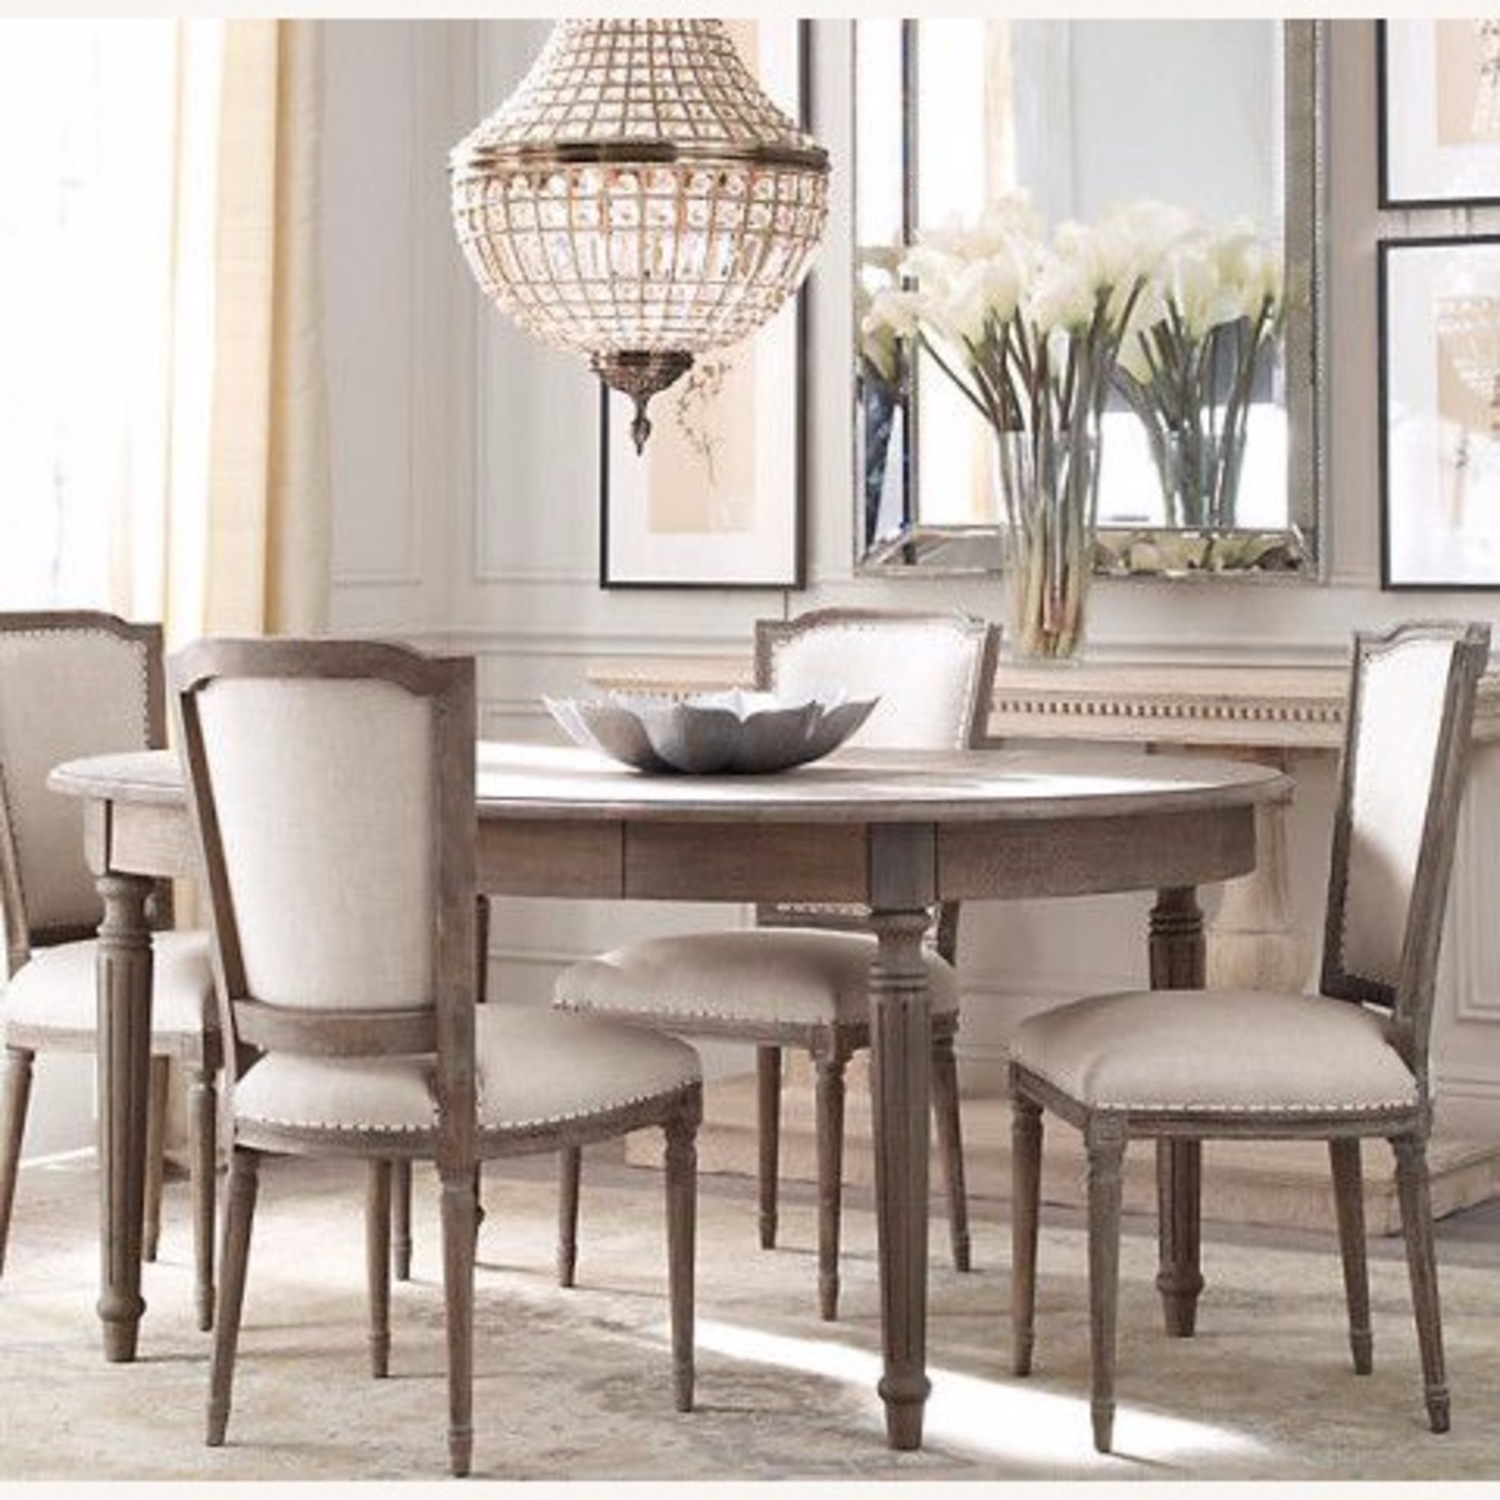 Superb Round Dining Table Set With Leaf